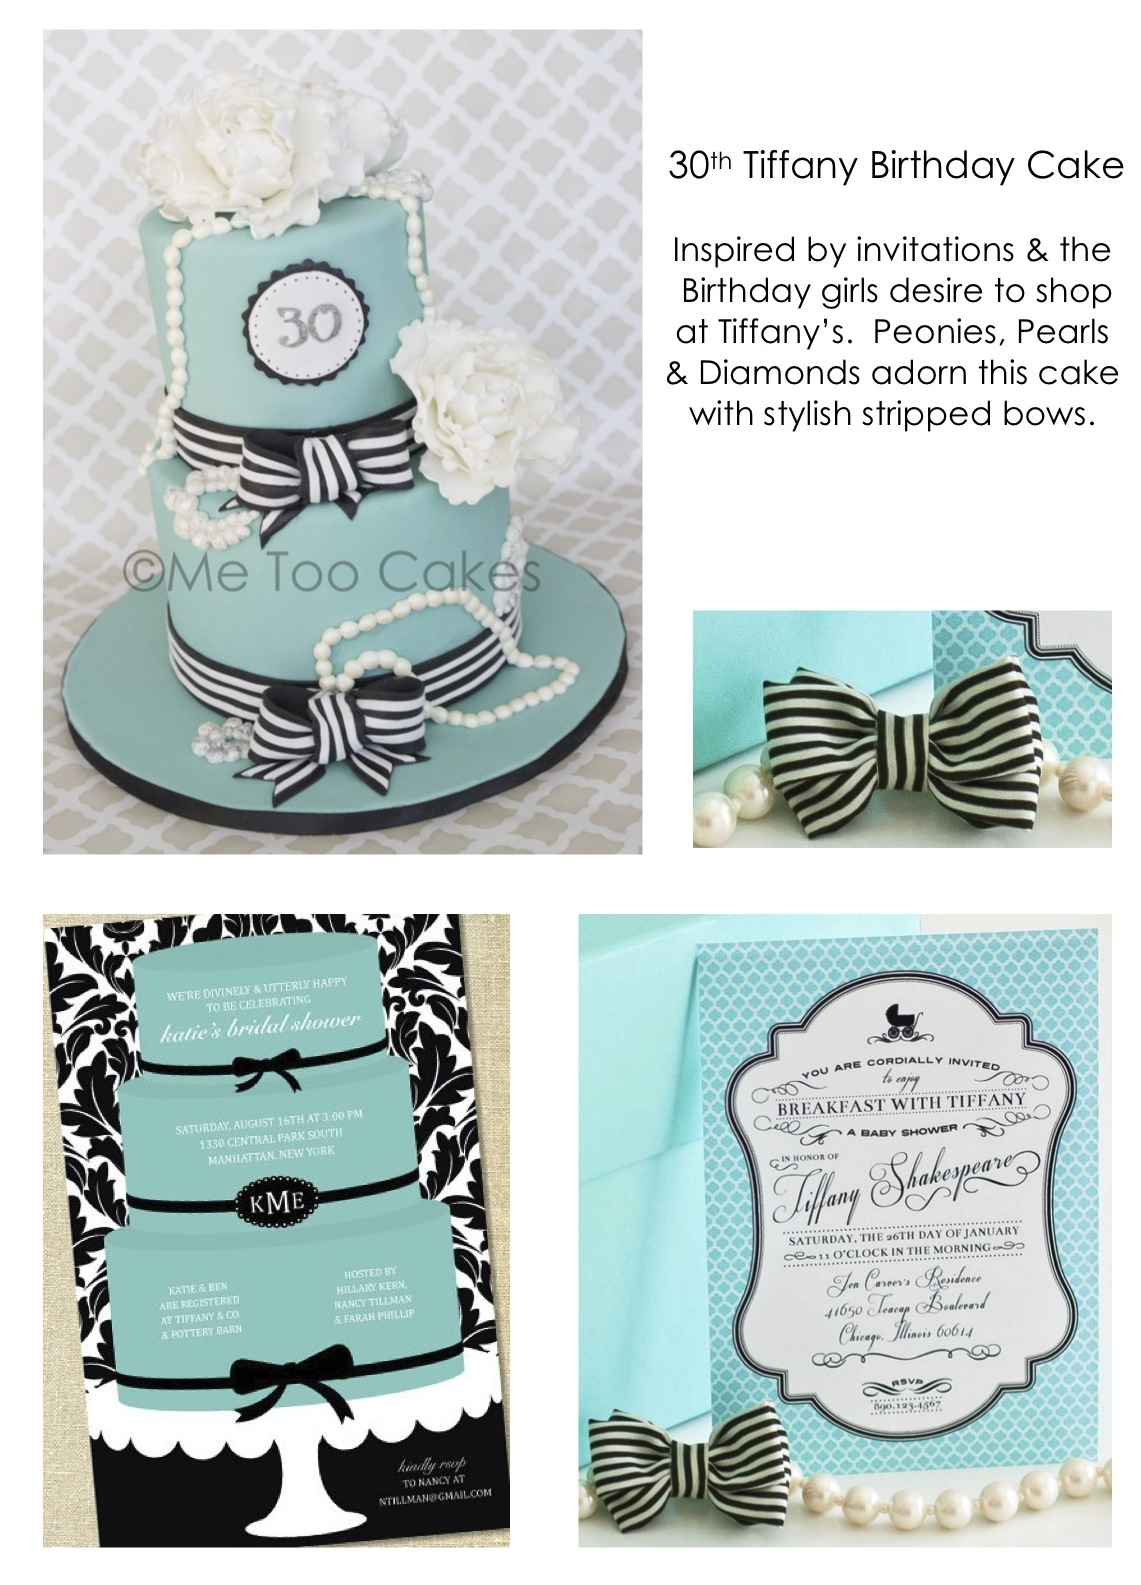 Swell Inspiration For 30Th Birthday Cake Me Too Cakes Amy Landini Funny Birthday Cards Online Overcheapnameinfo